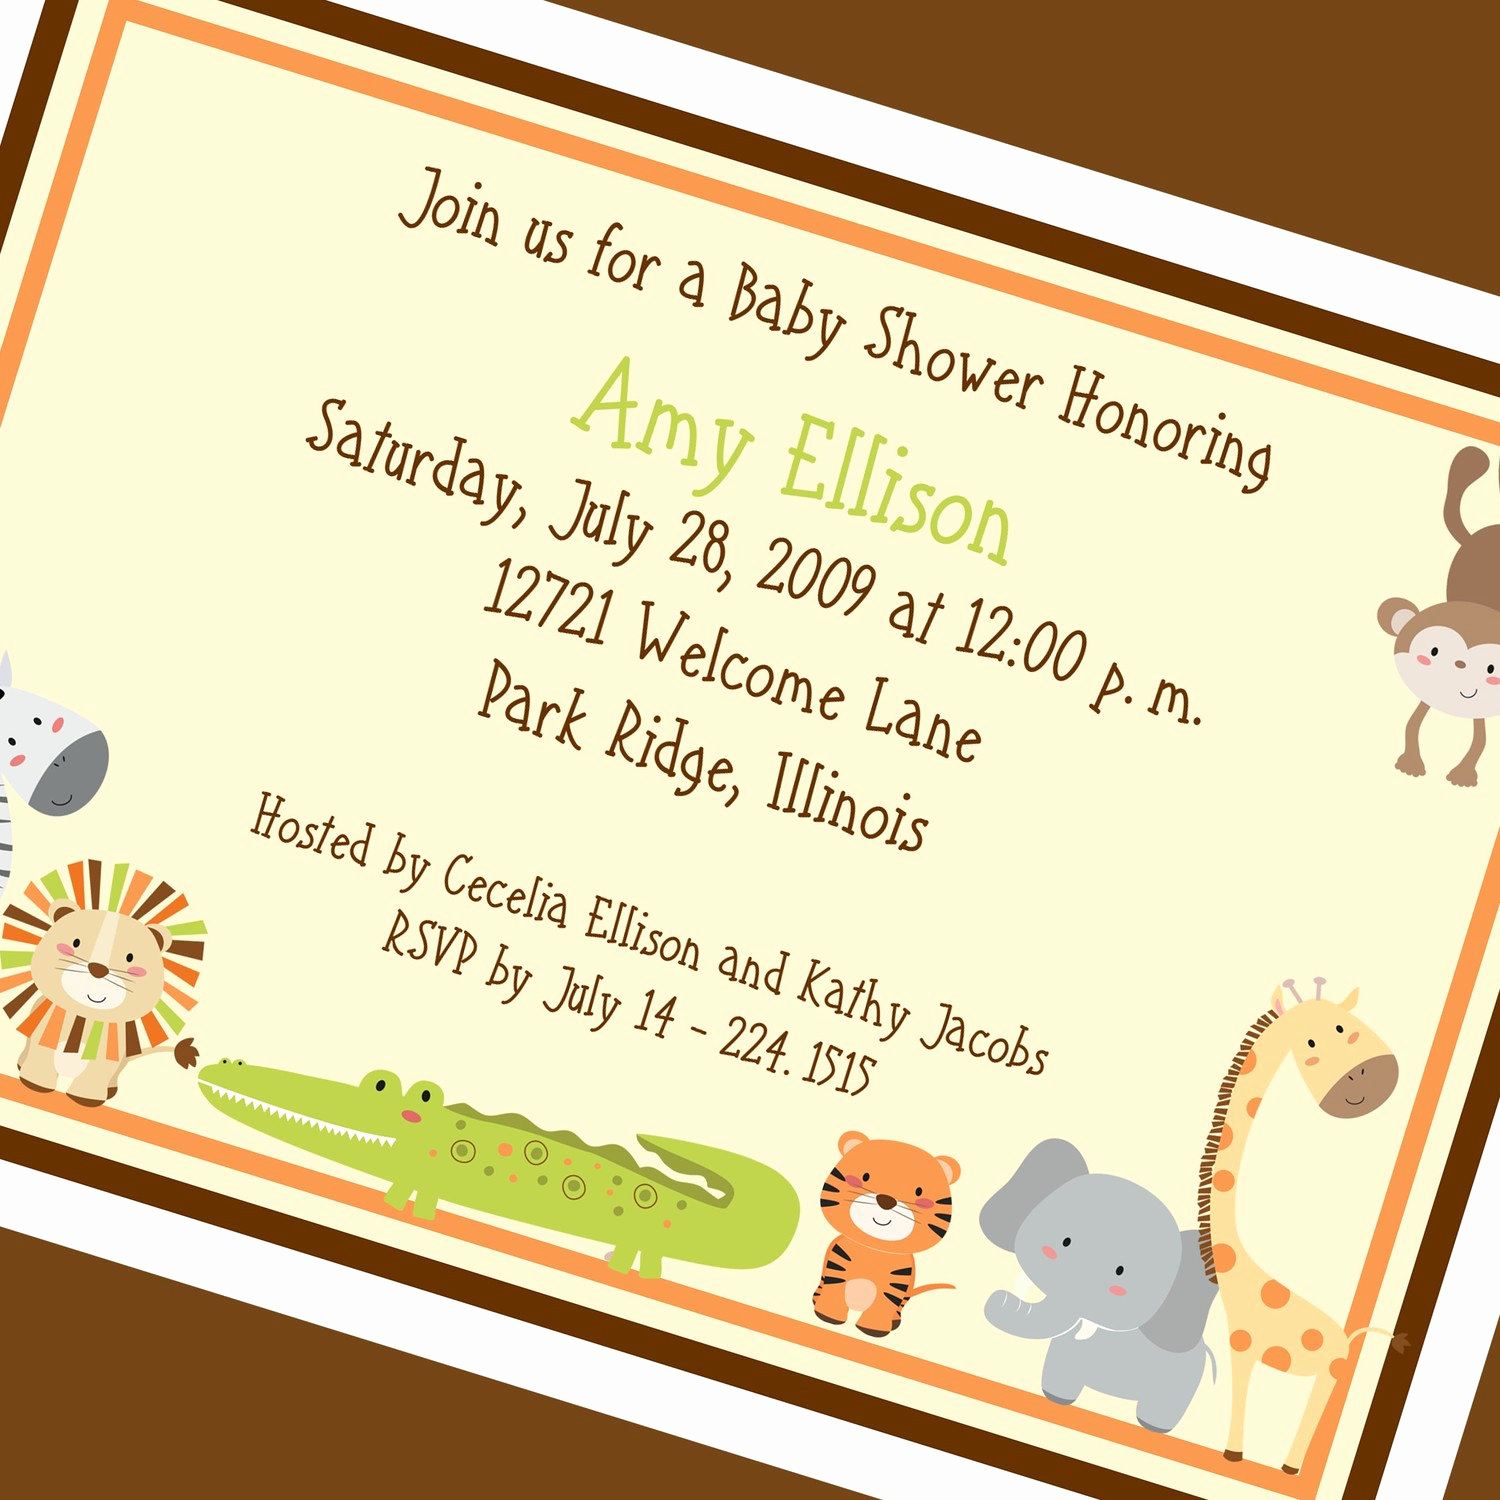 Jungle Baby Shower Invitation Lovely Jungle Baby Shower Invitation Printable Invitation Design